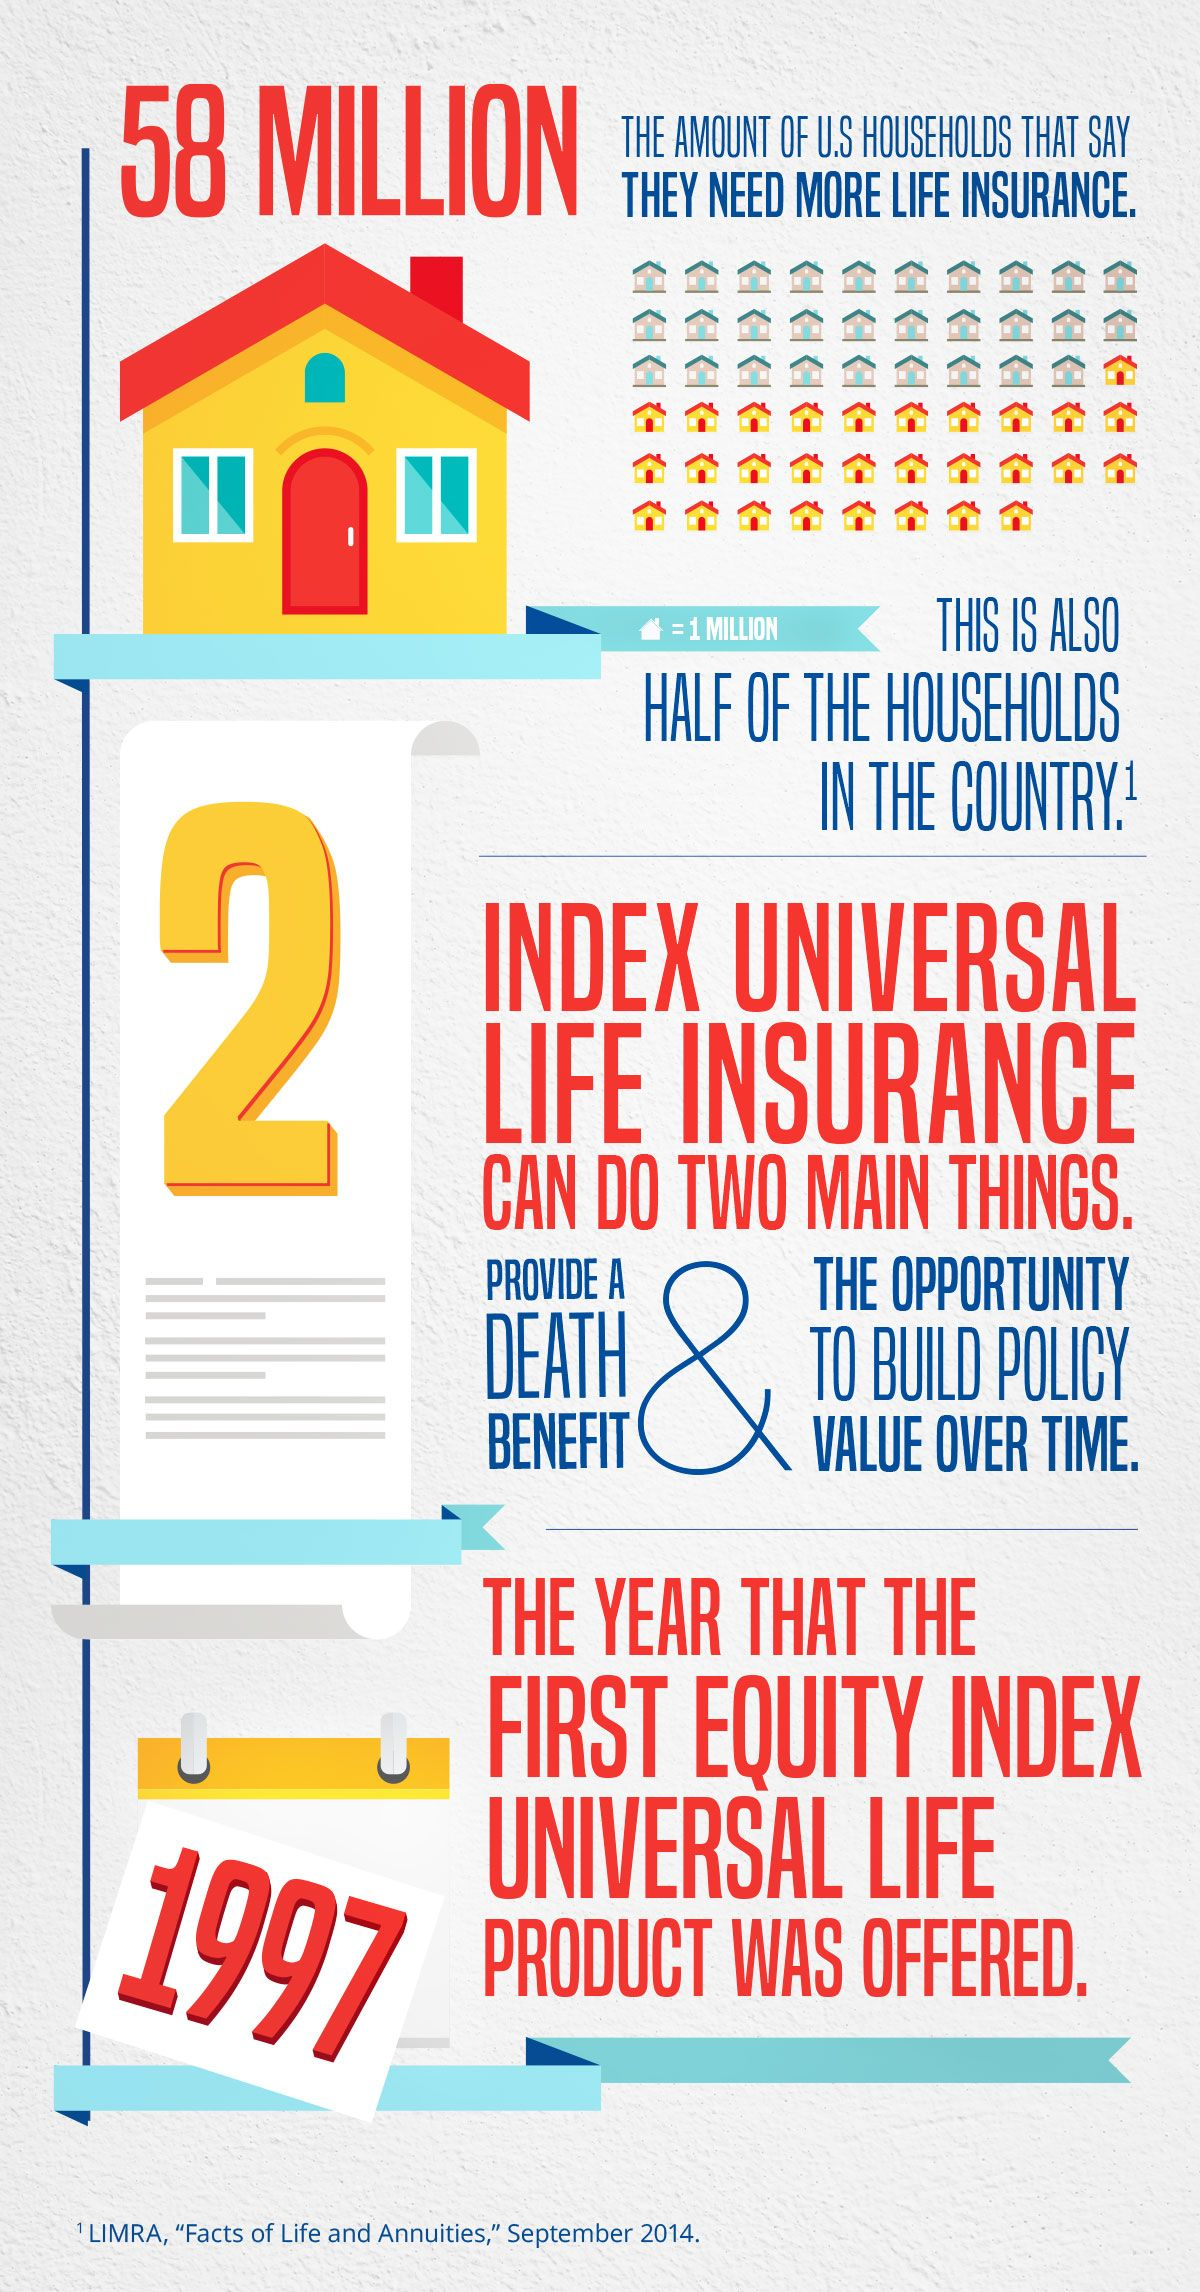 Over the last few decades, index universal life insurance